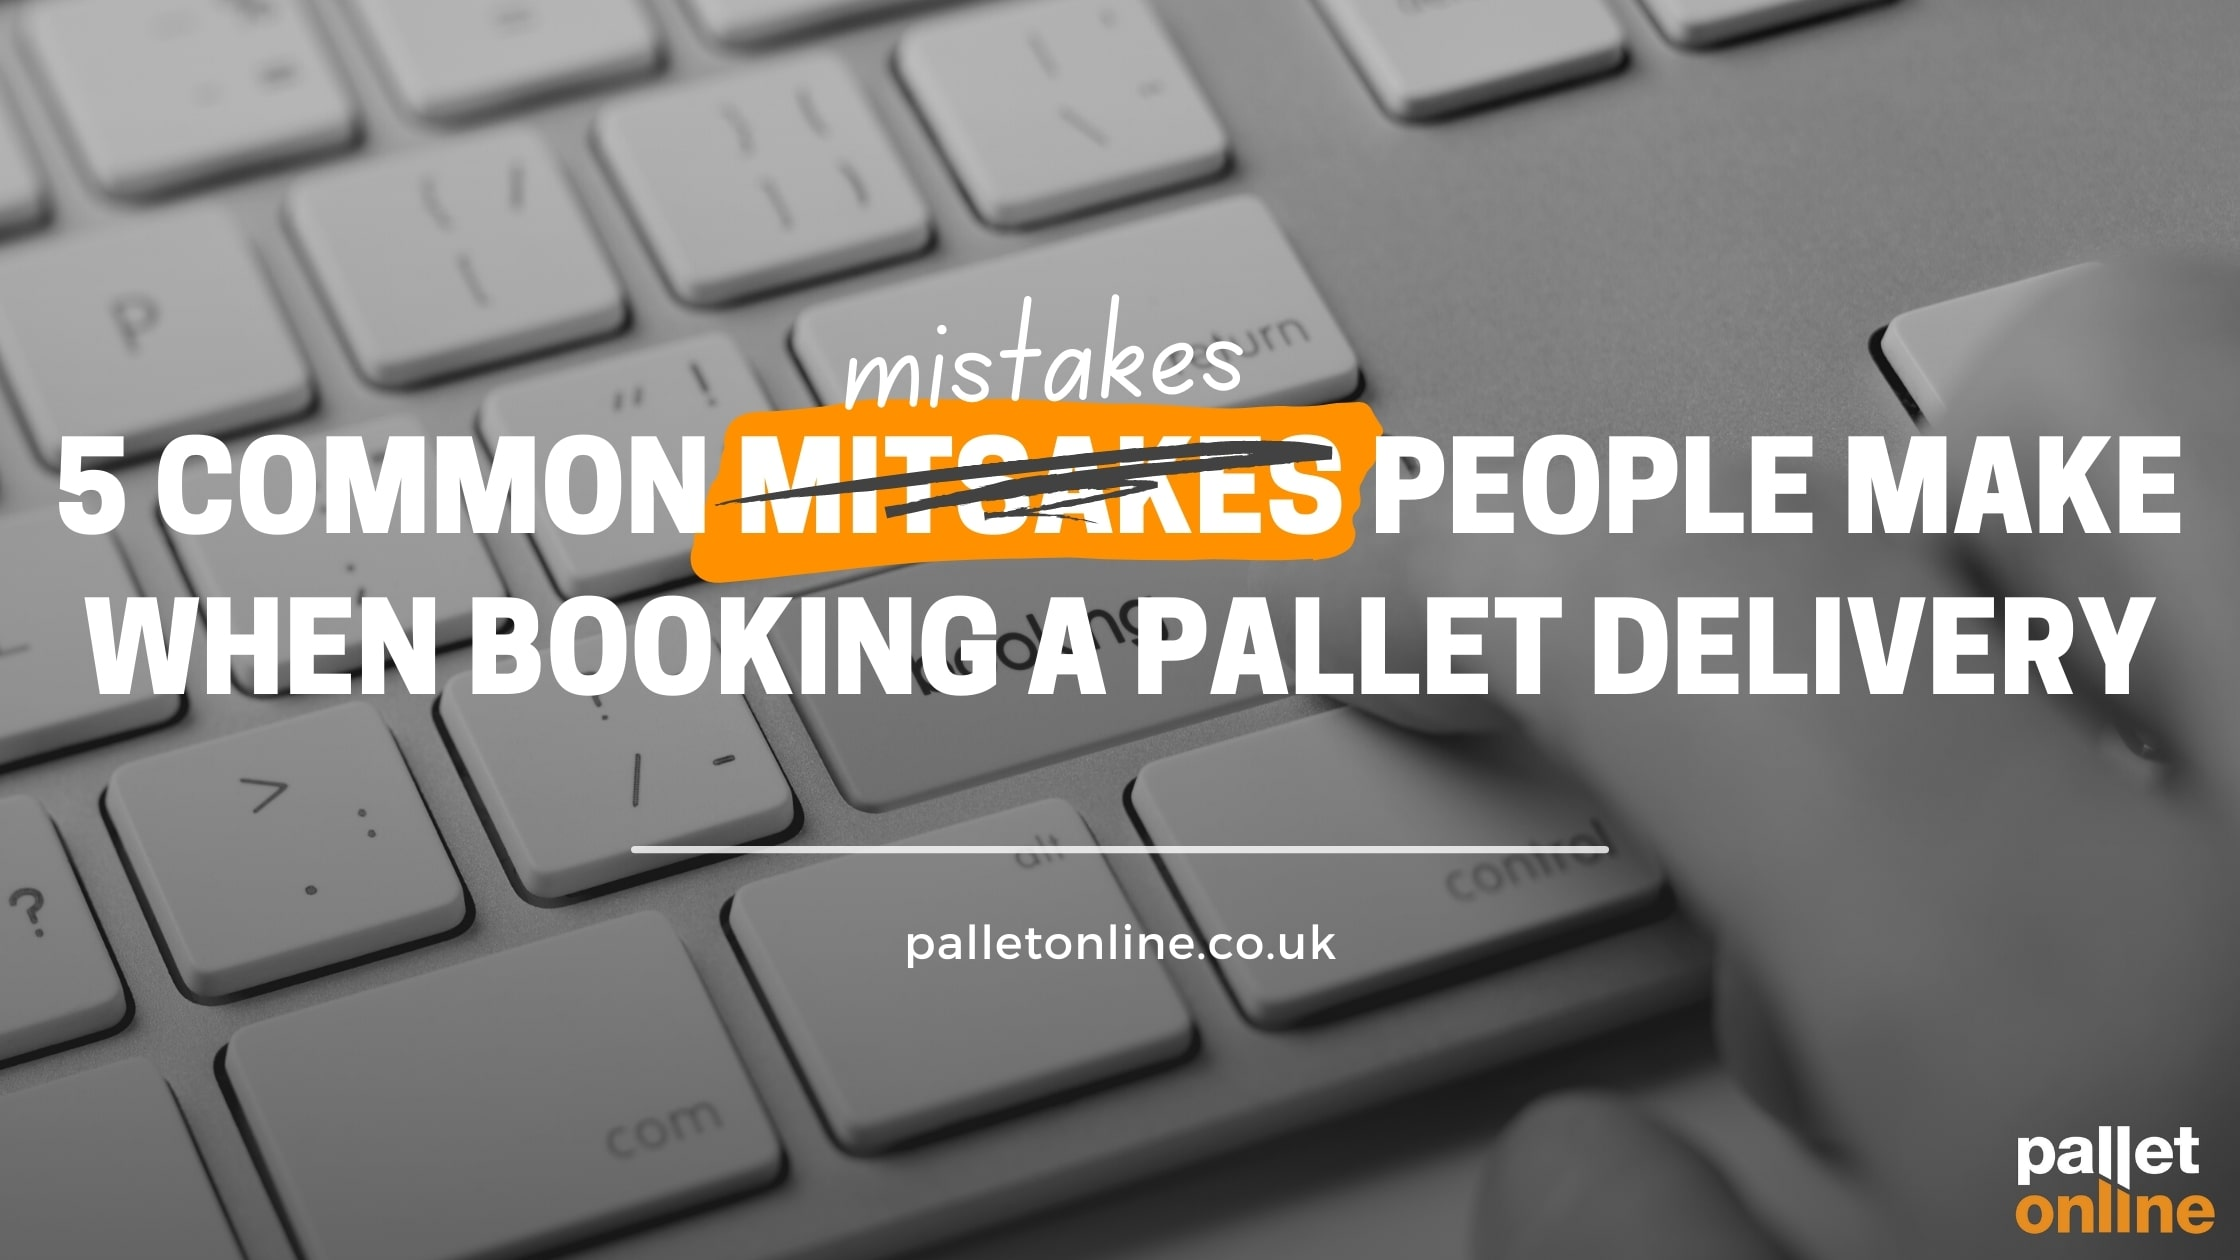 5 Common Mistakes People Make Booking Pallet Deliveries